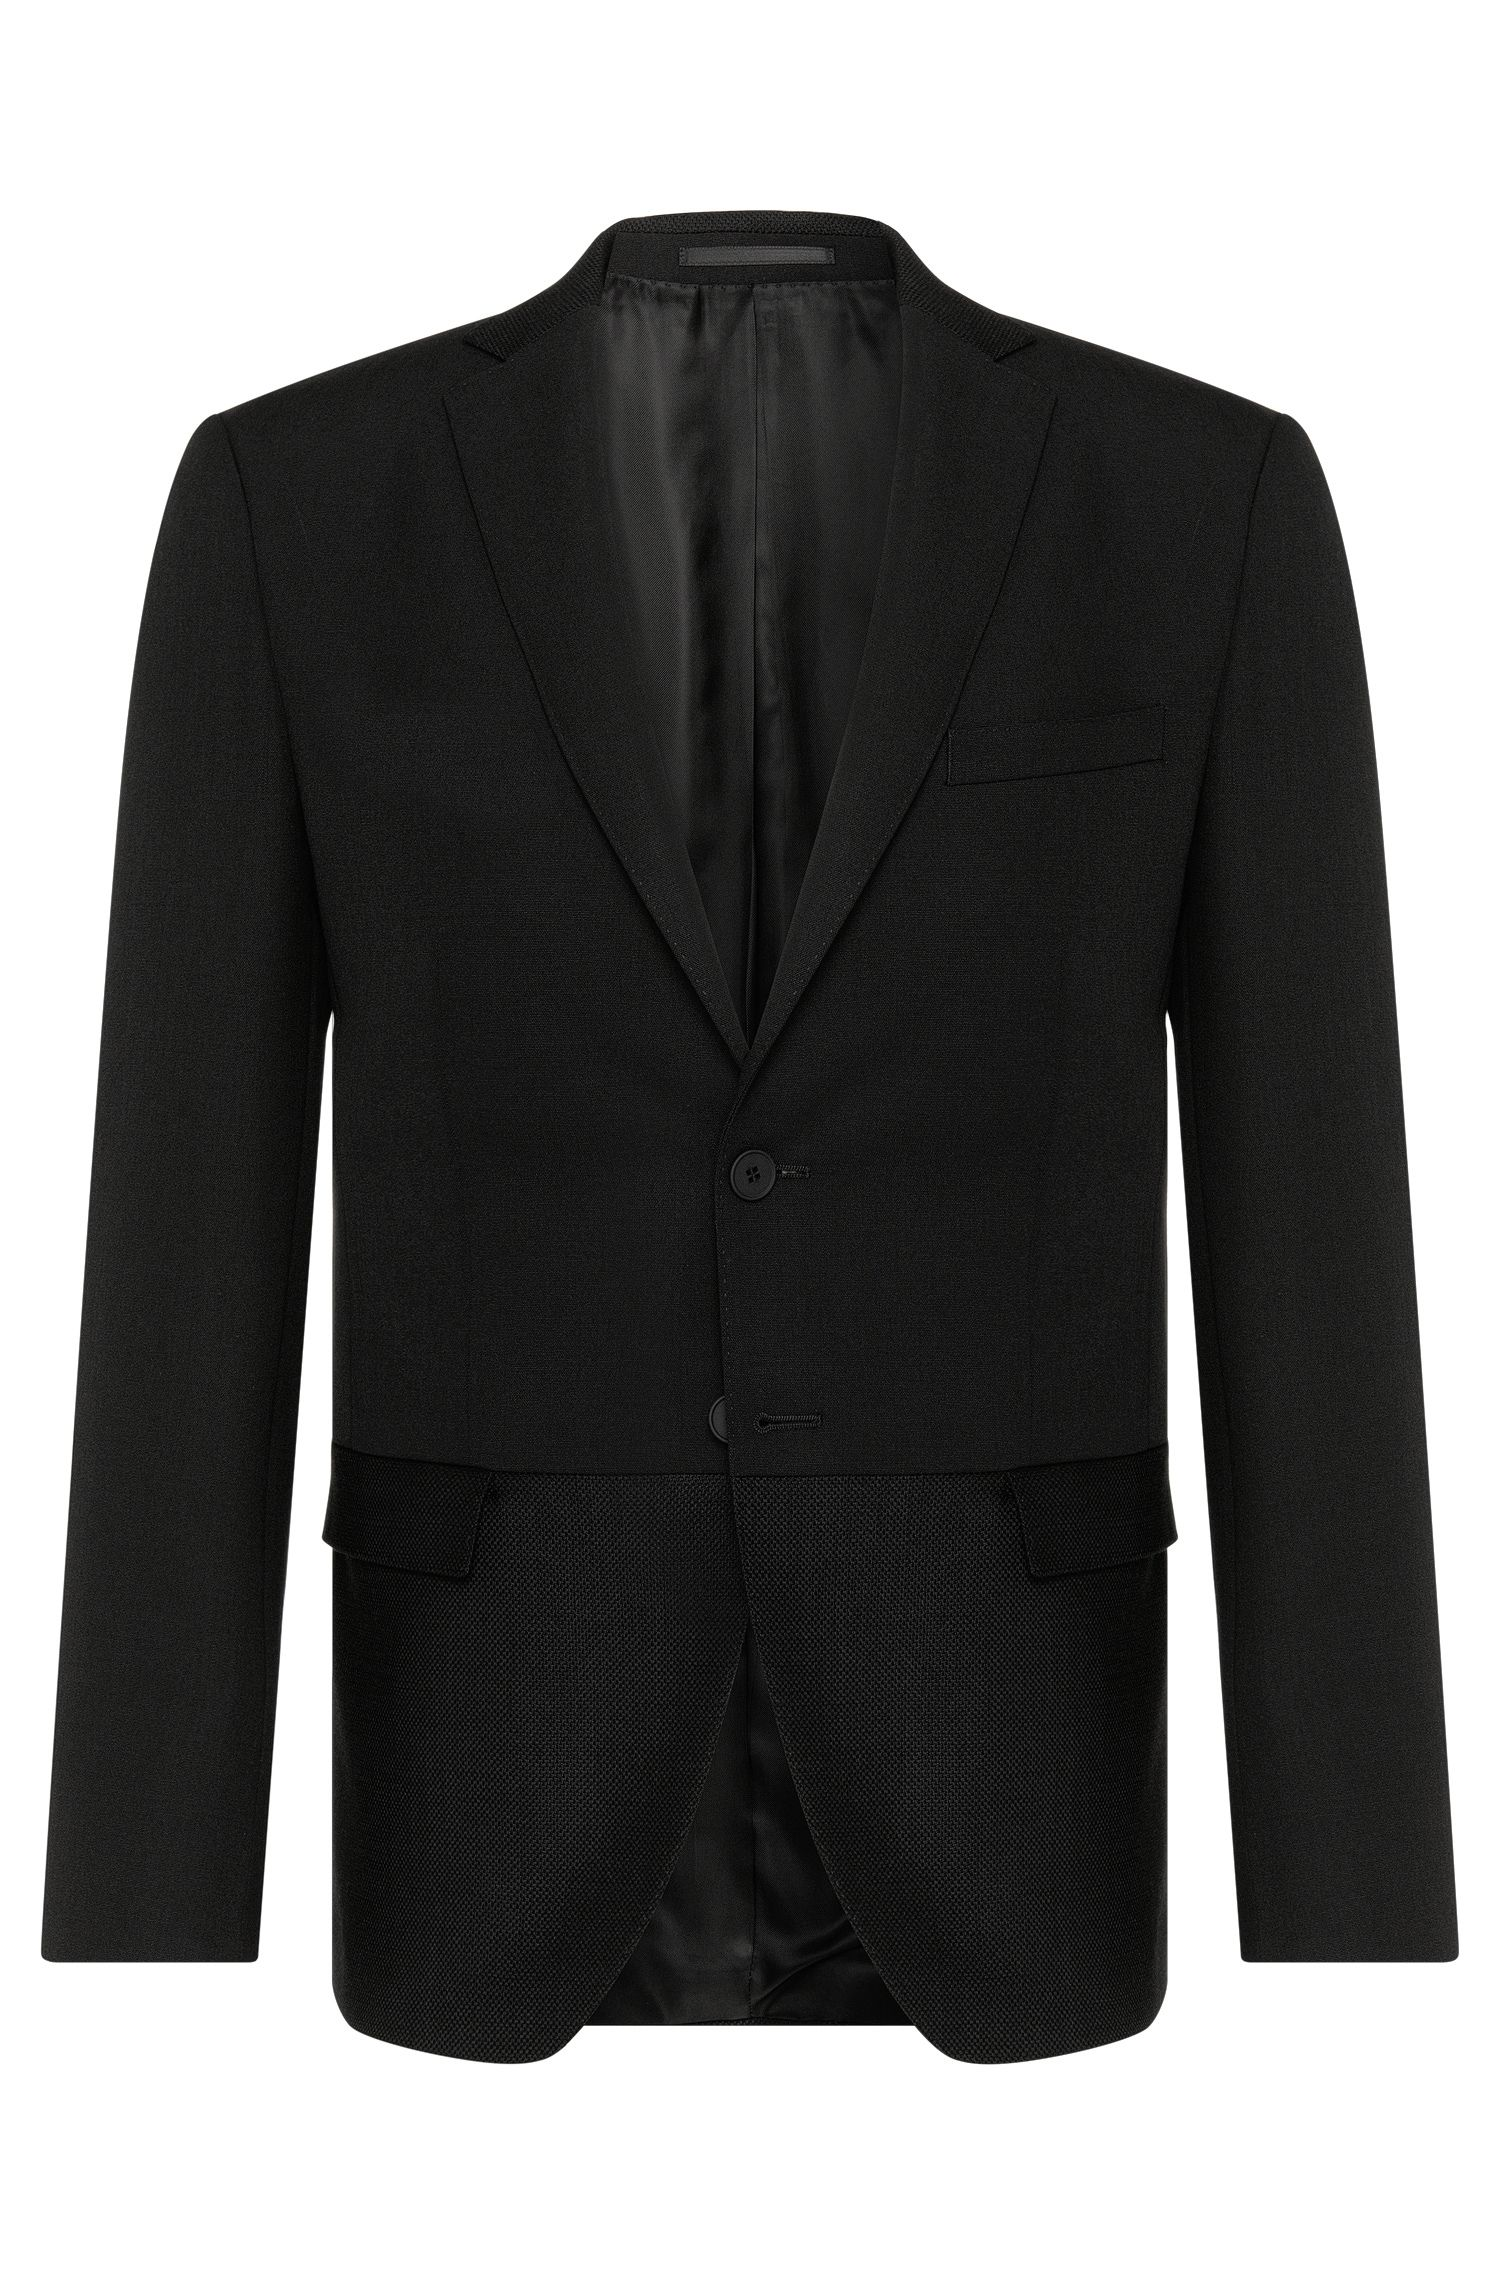 Virgin Wool Mohair Sport Coat, Extra Slim Fit | Reevon, Black